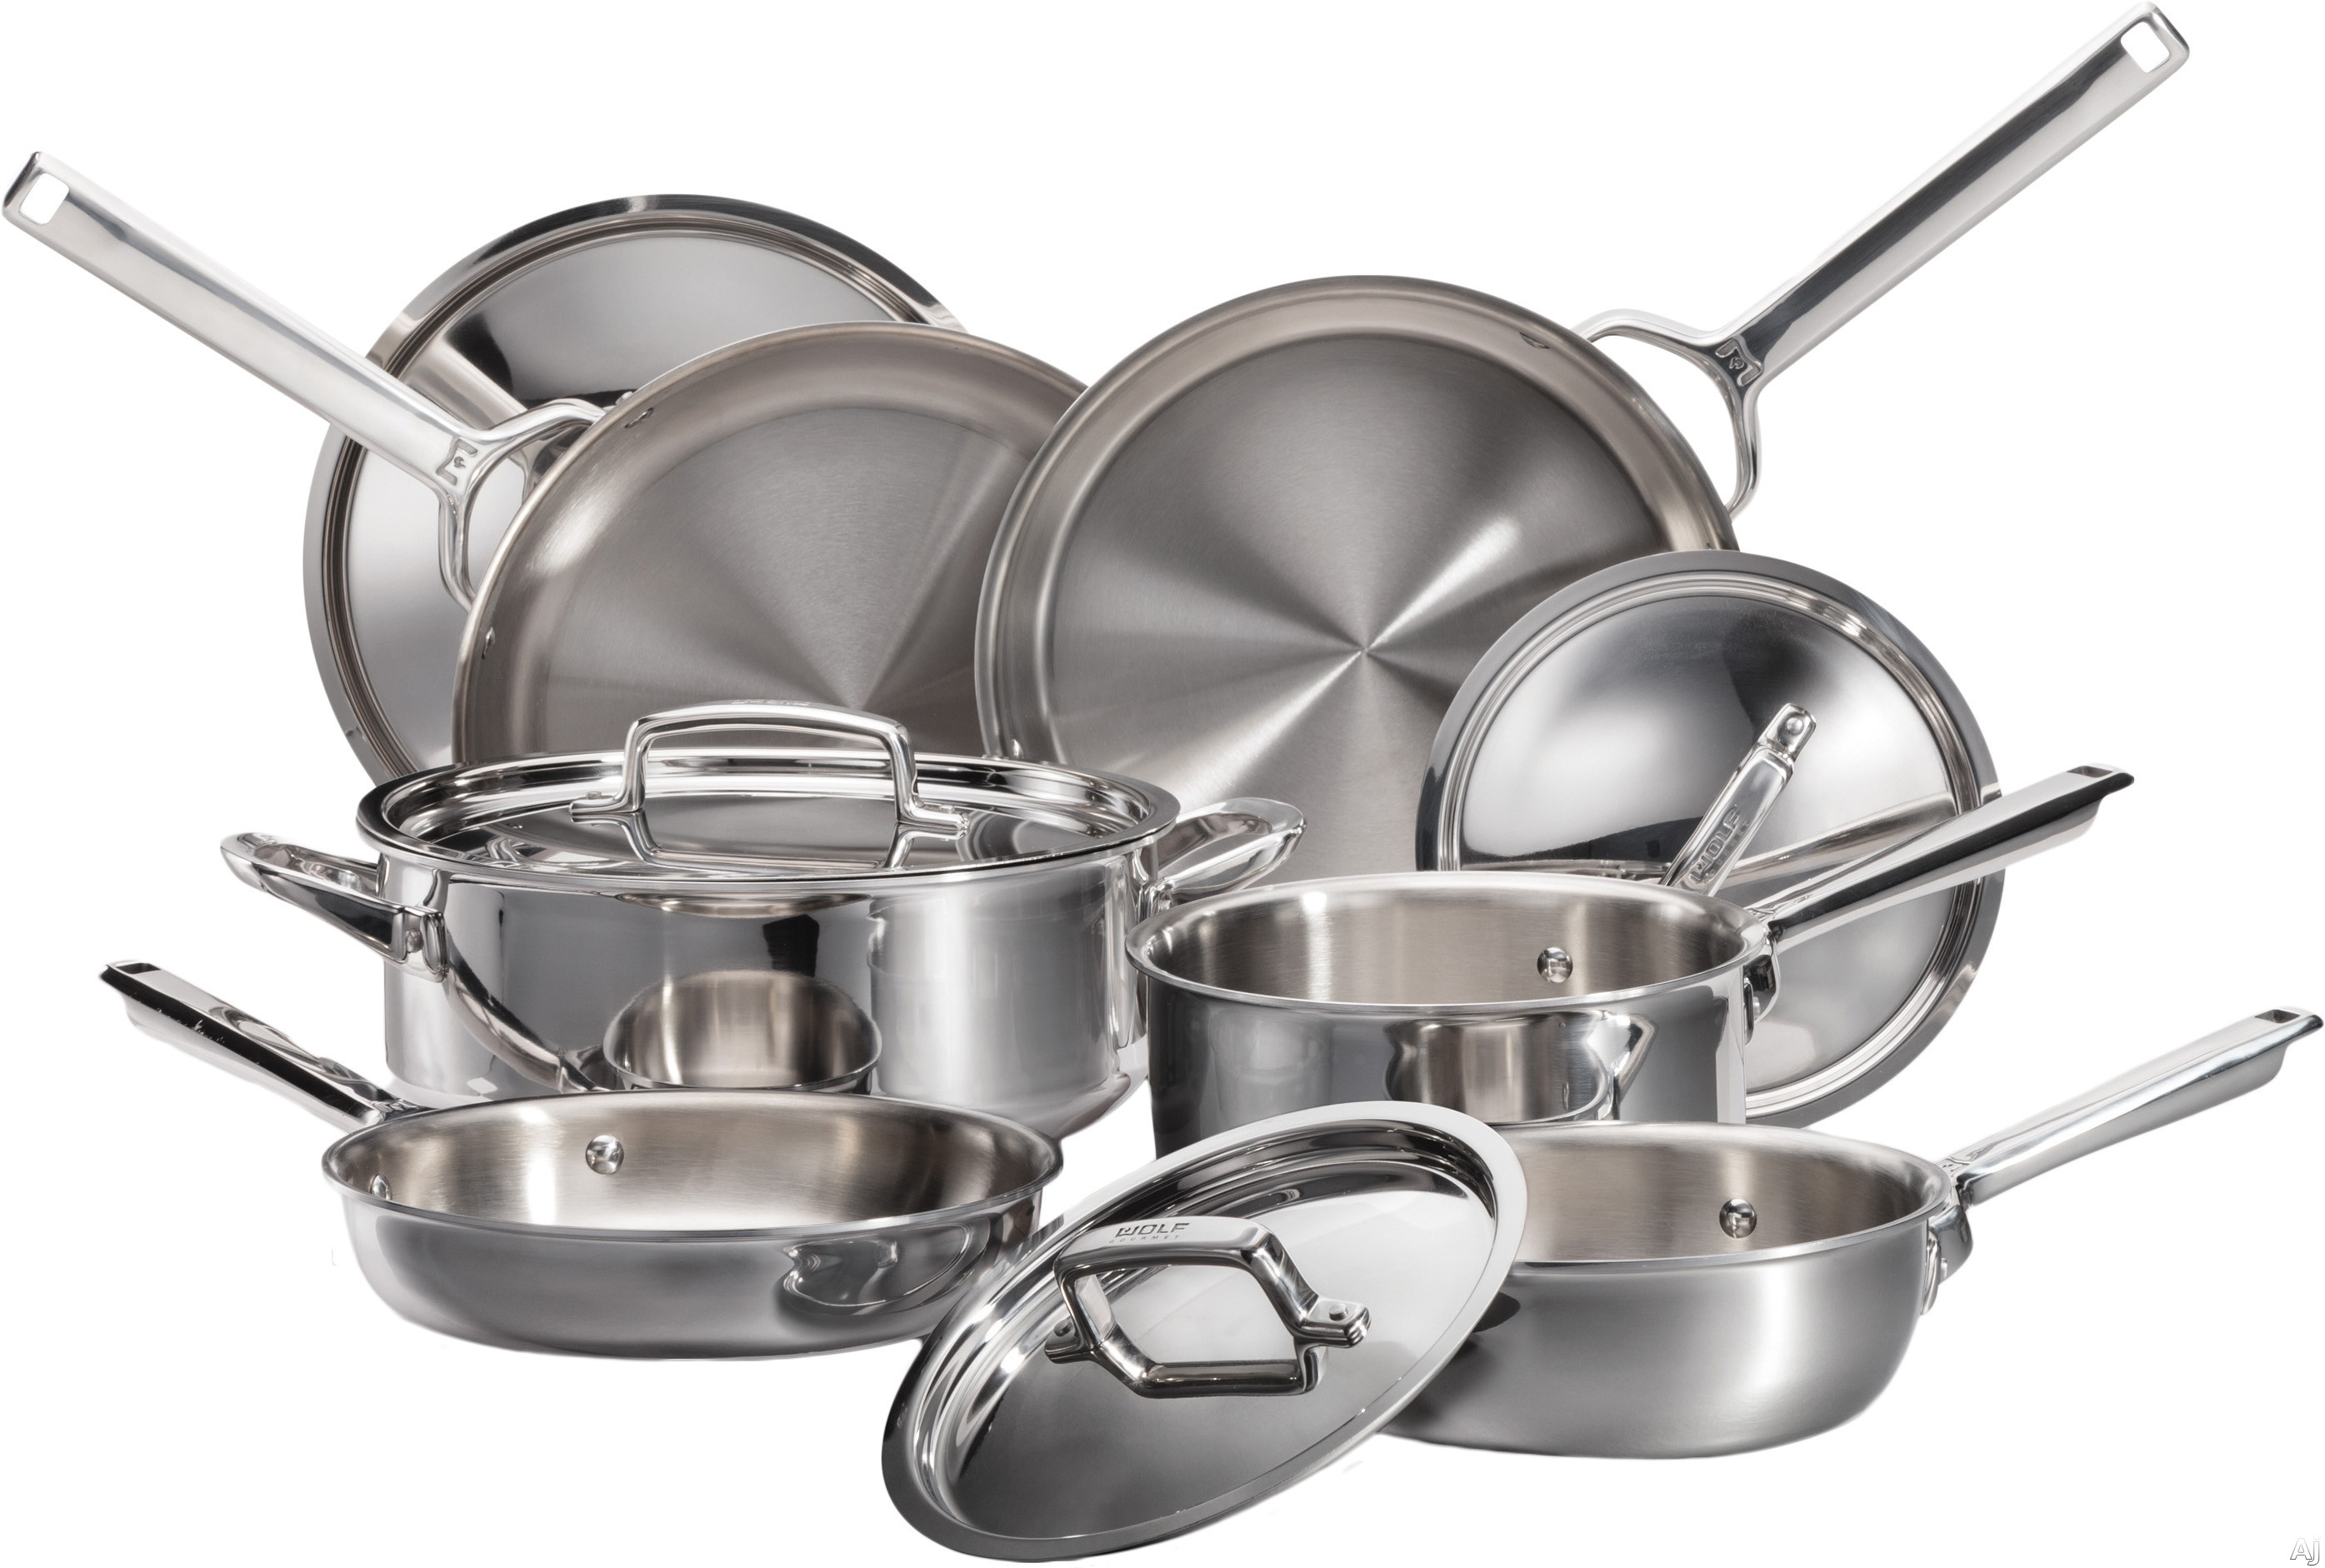 Wolf Gourmet WGCW100S 10 Piece Cookware Set with 3.5 Quart Sautee Pan, 11.5 Inch Skillet, 6 Quart Round Dutch Oven with Lid, 3 Quart Saucepan with Lid, 2 Quart Saucier with Lid and 8.5 Inch Skillet